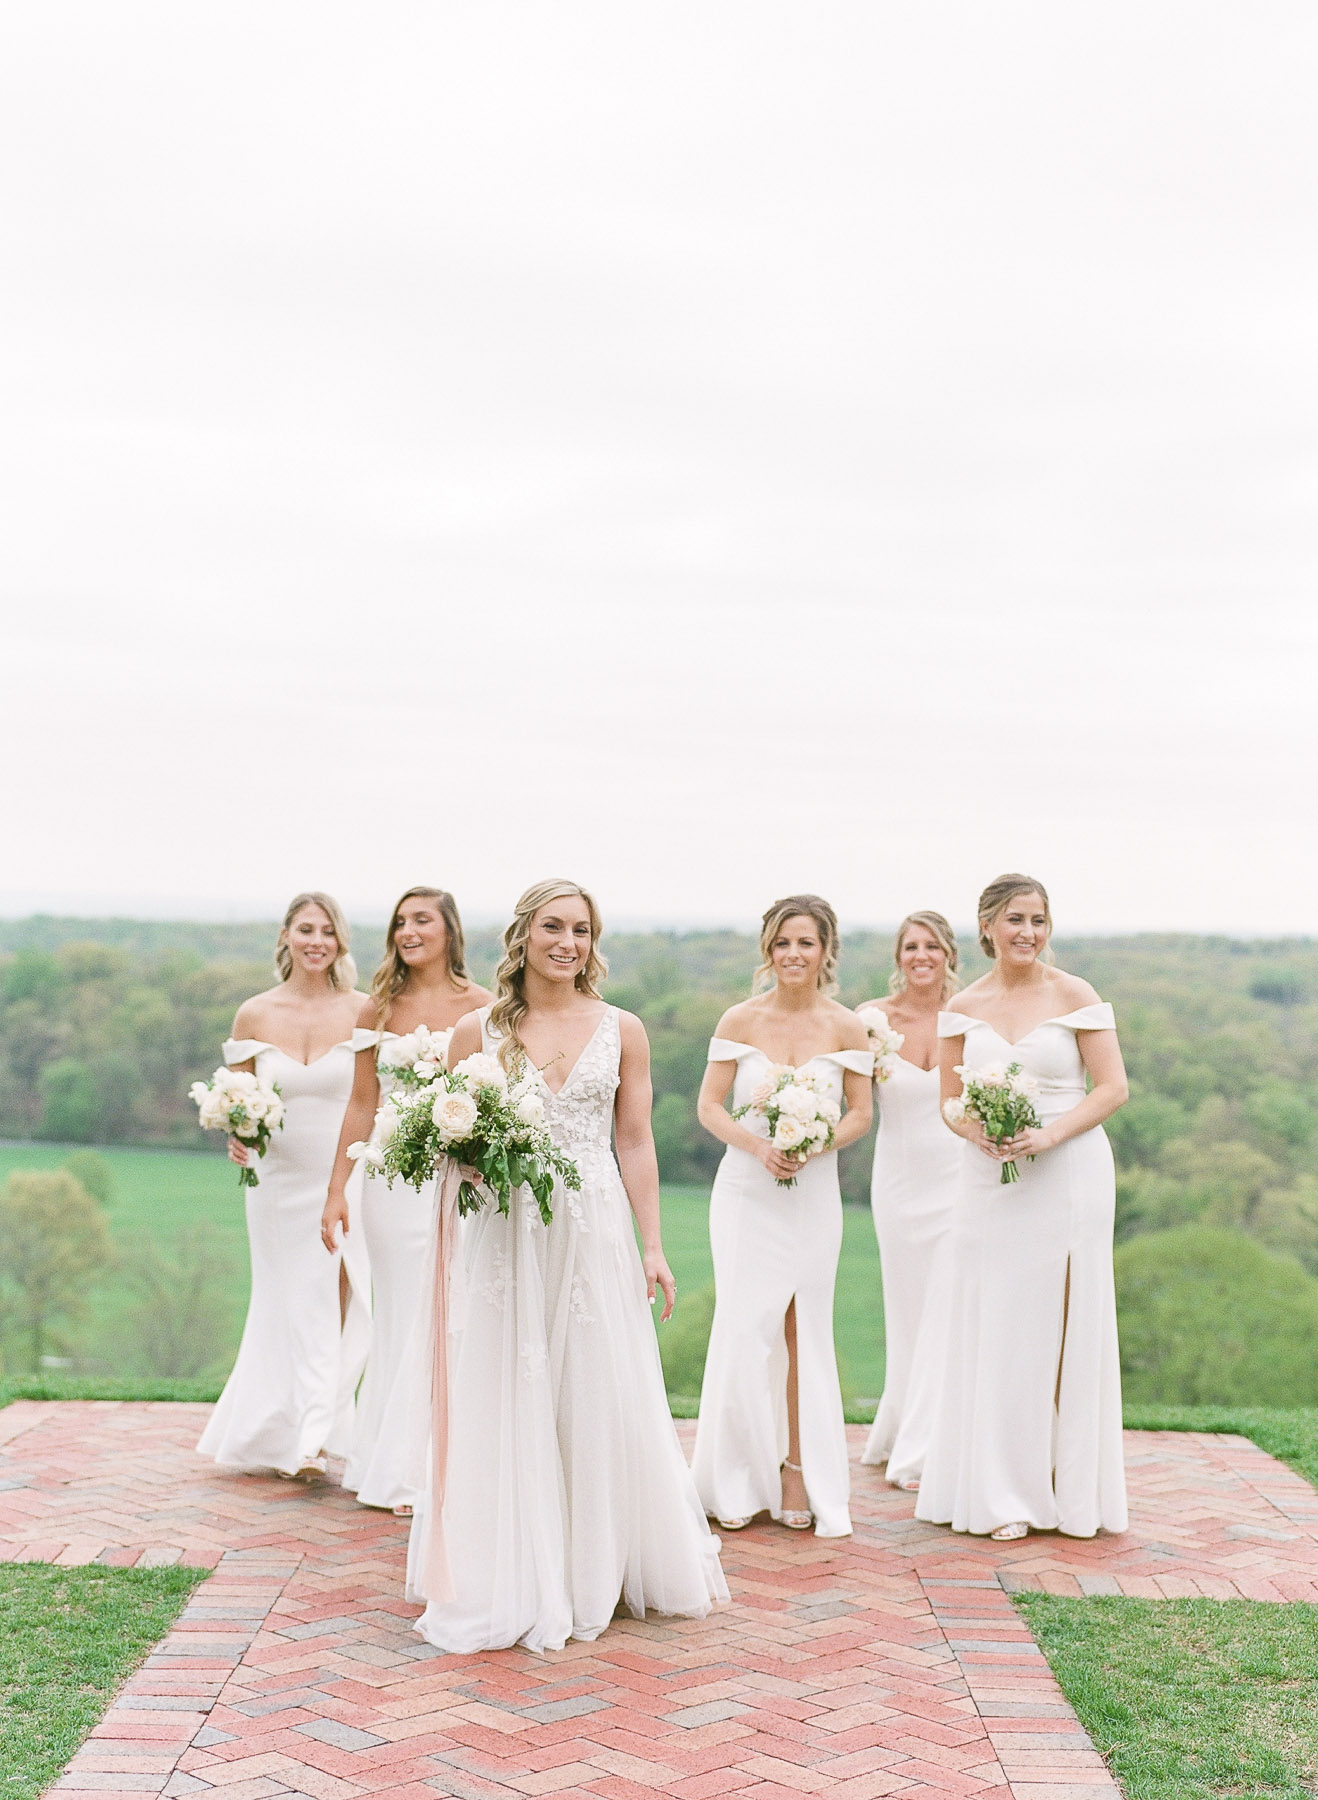 White bridesmaid dresses from Kleinfelds at NJ Wedding